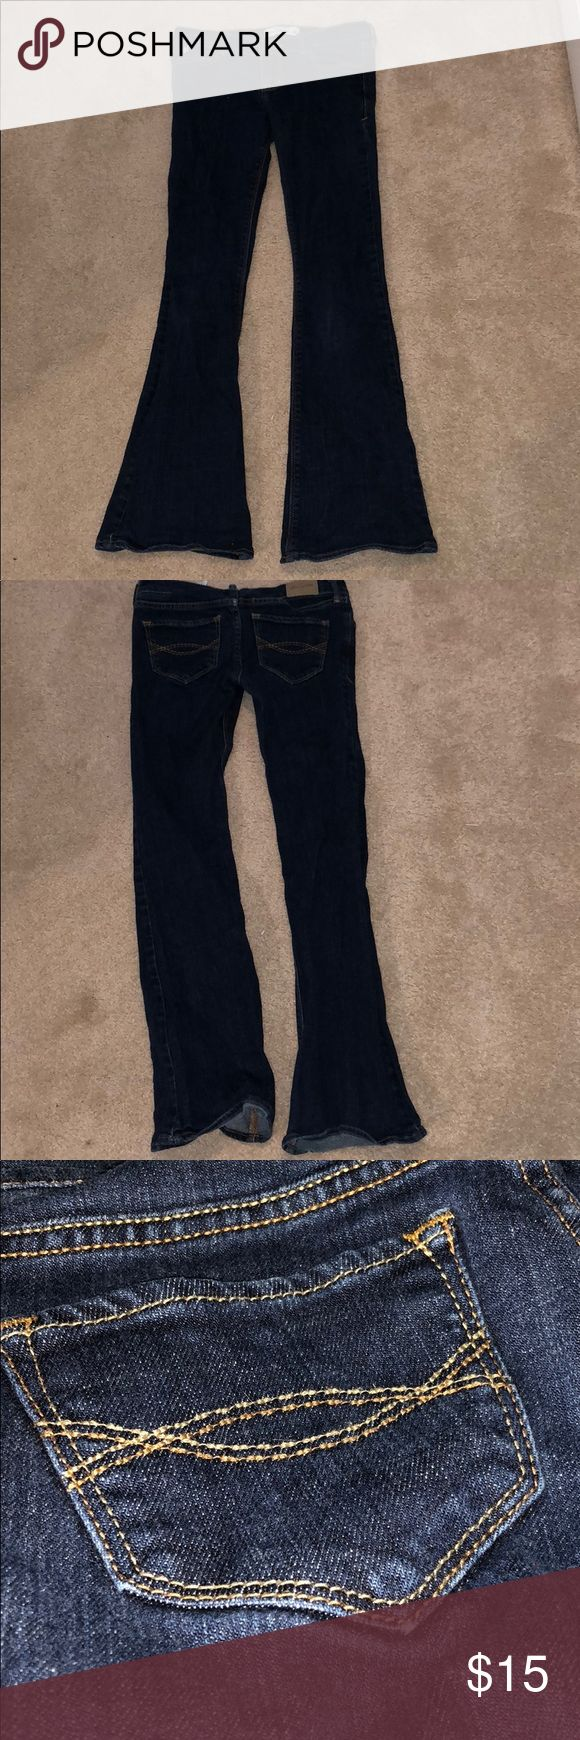 Abercrombie Kids Cute Stretch Flare Jeans These jeans are worn but still look as good as new!   Outfit ideas: -pair it with a simple button-down and flats -pair it with a float tank top and scarf abercrombie kids Jeans Flare & Wide Leg